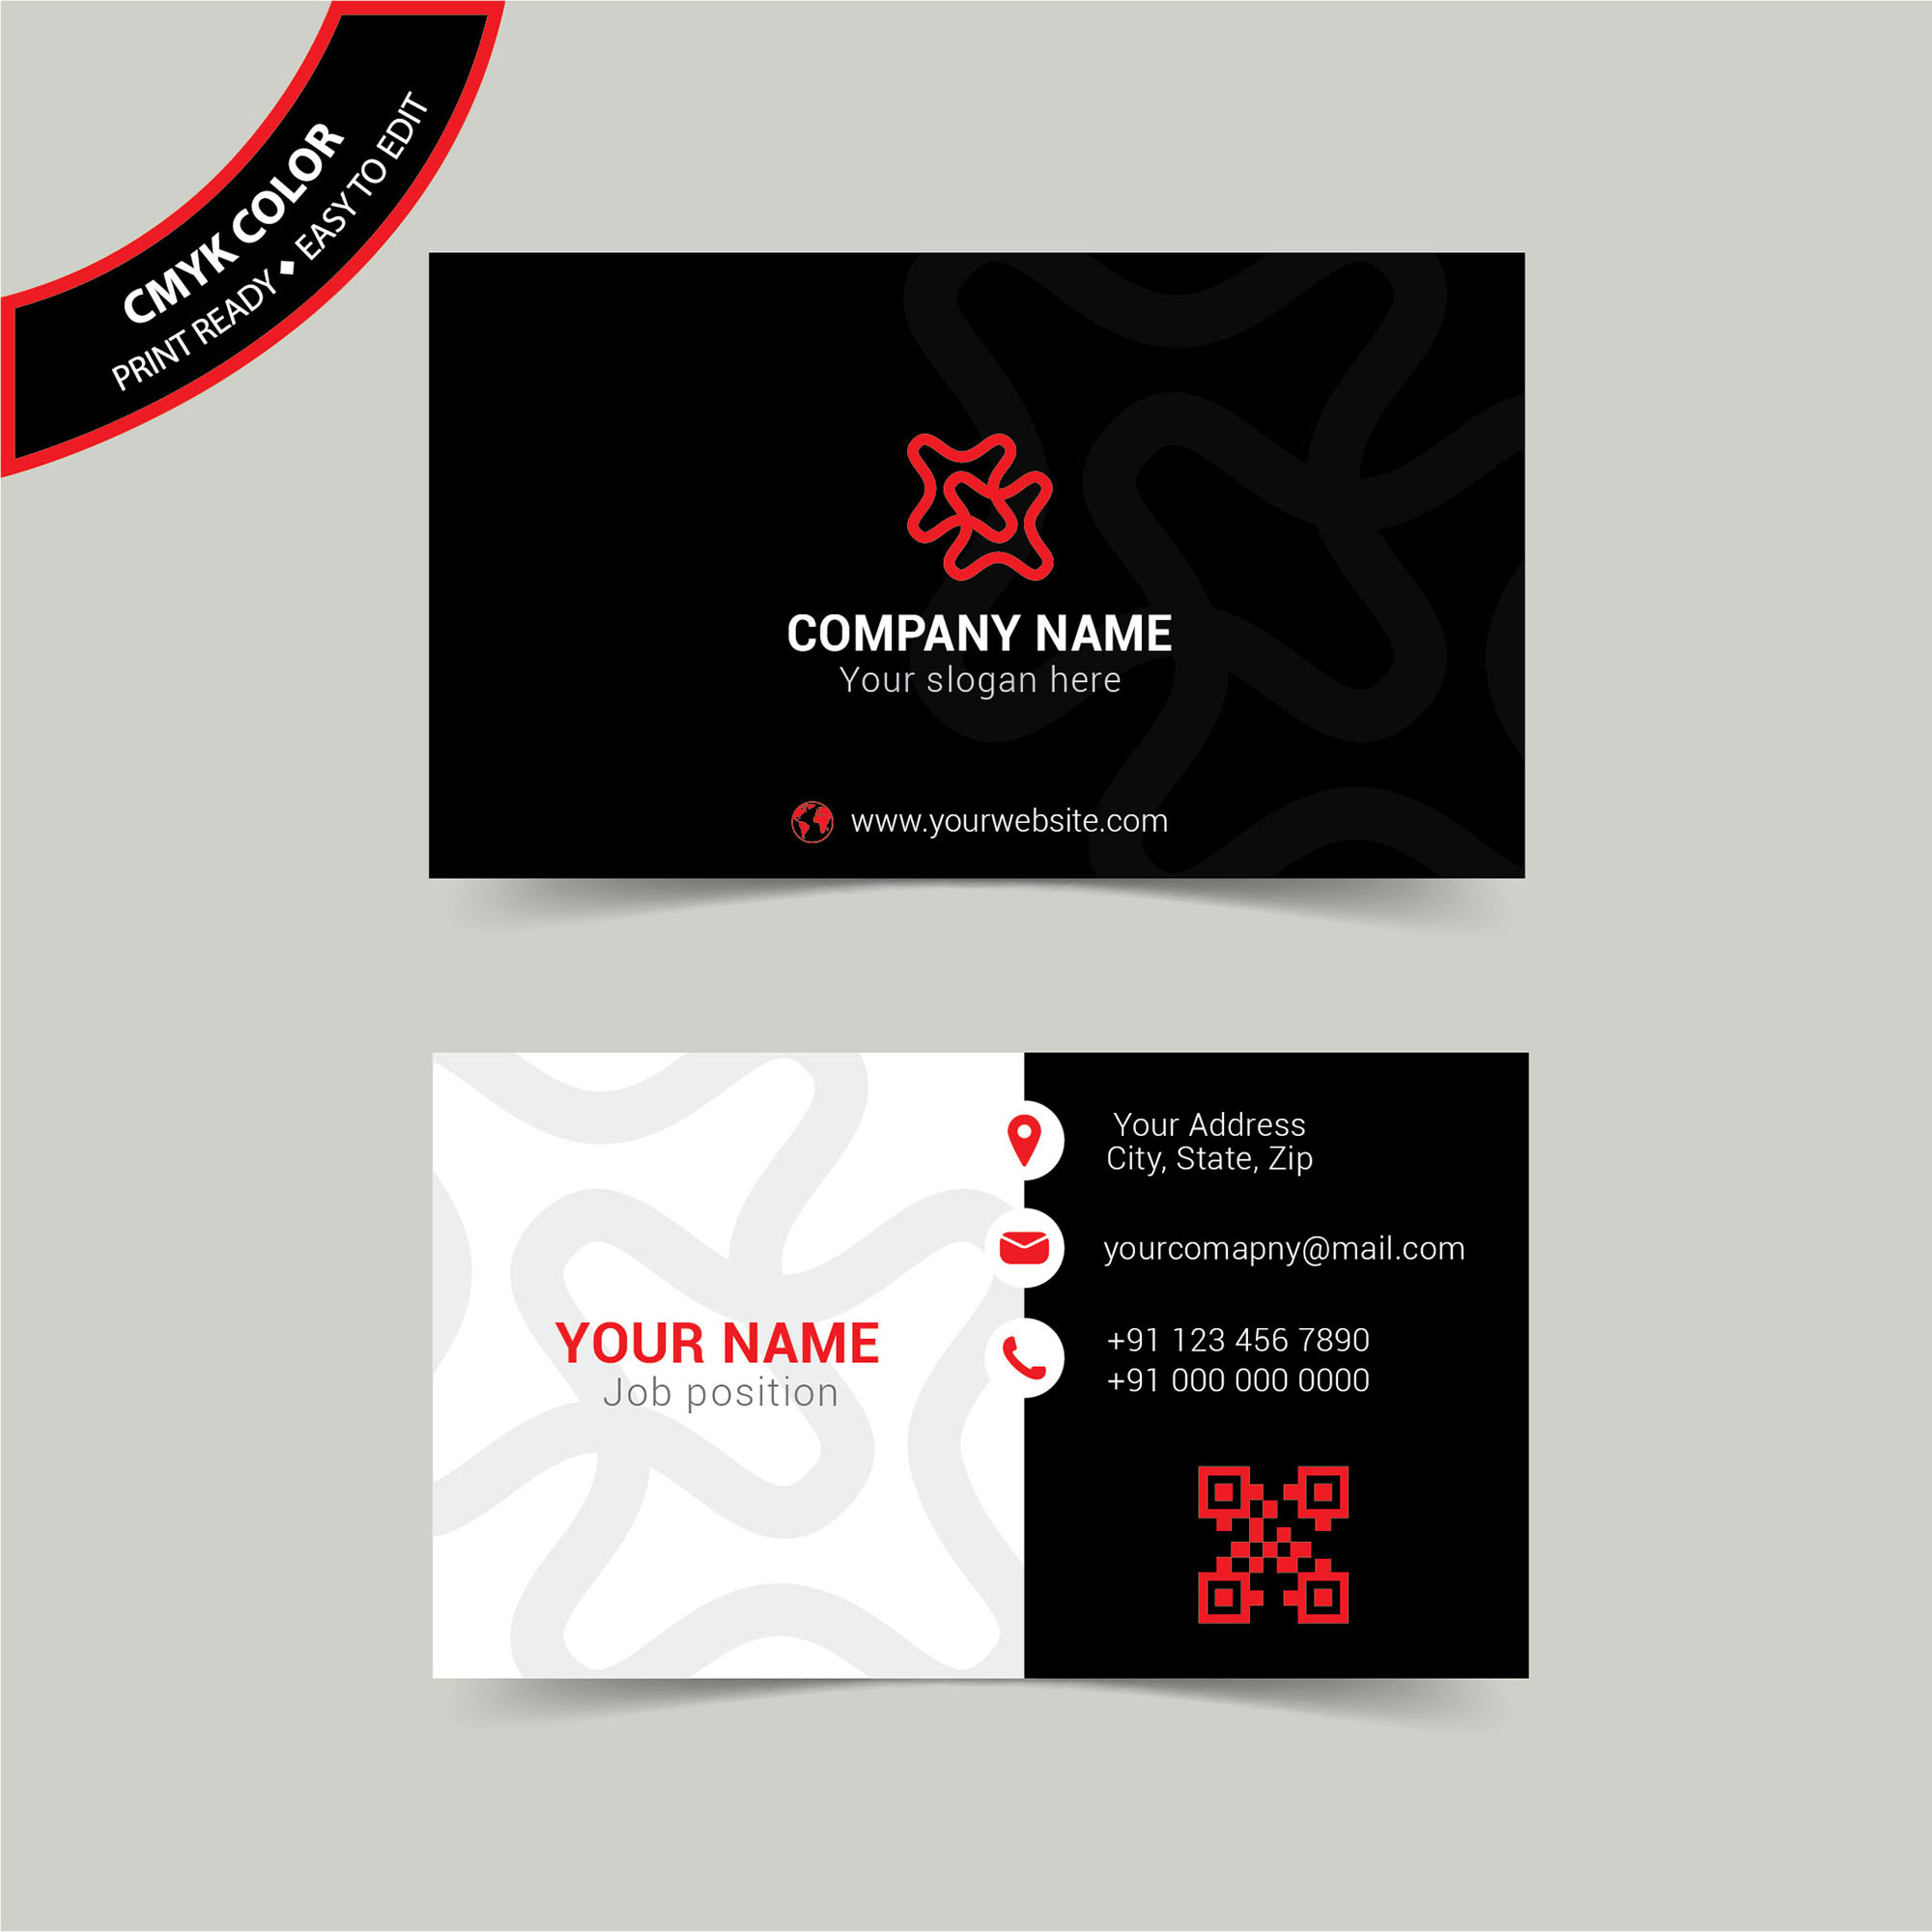 Business card vectors photos and psd files free download business simple business card design free download wisxicom free download business card templates design cheaphphosting Image collections